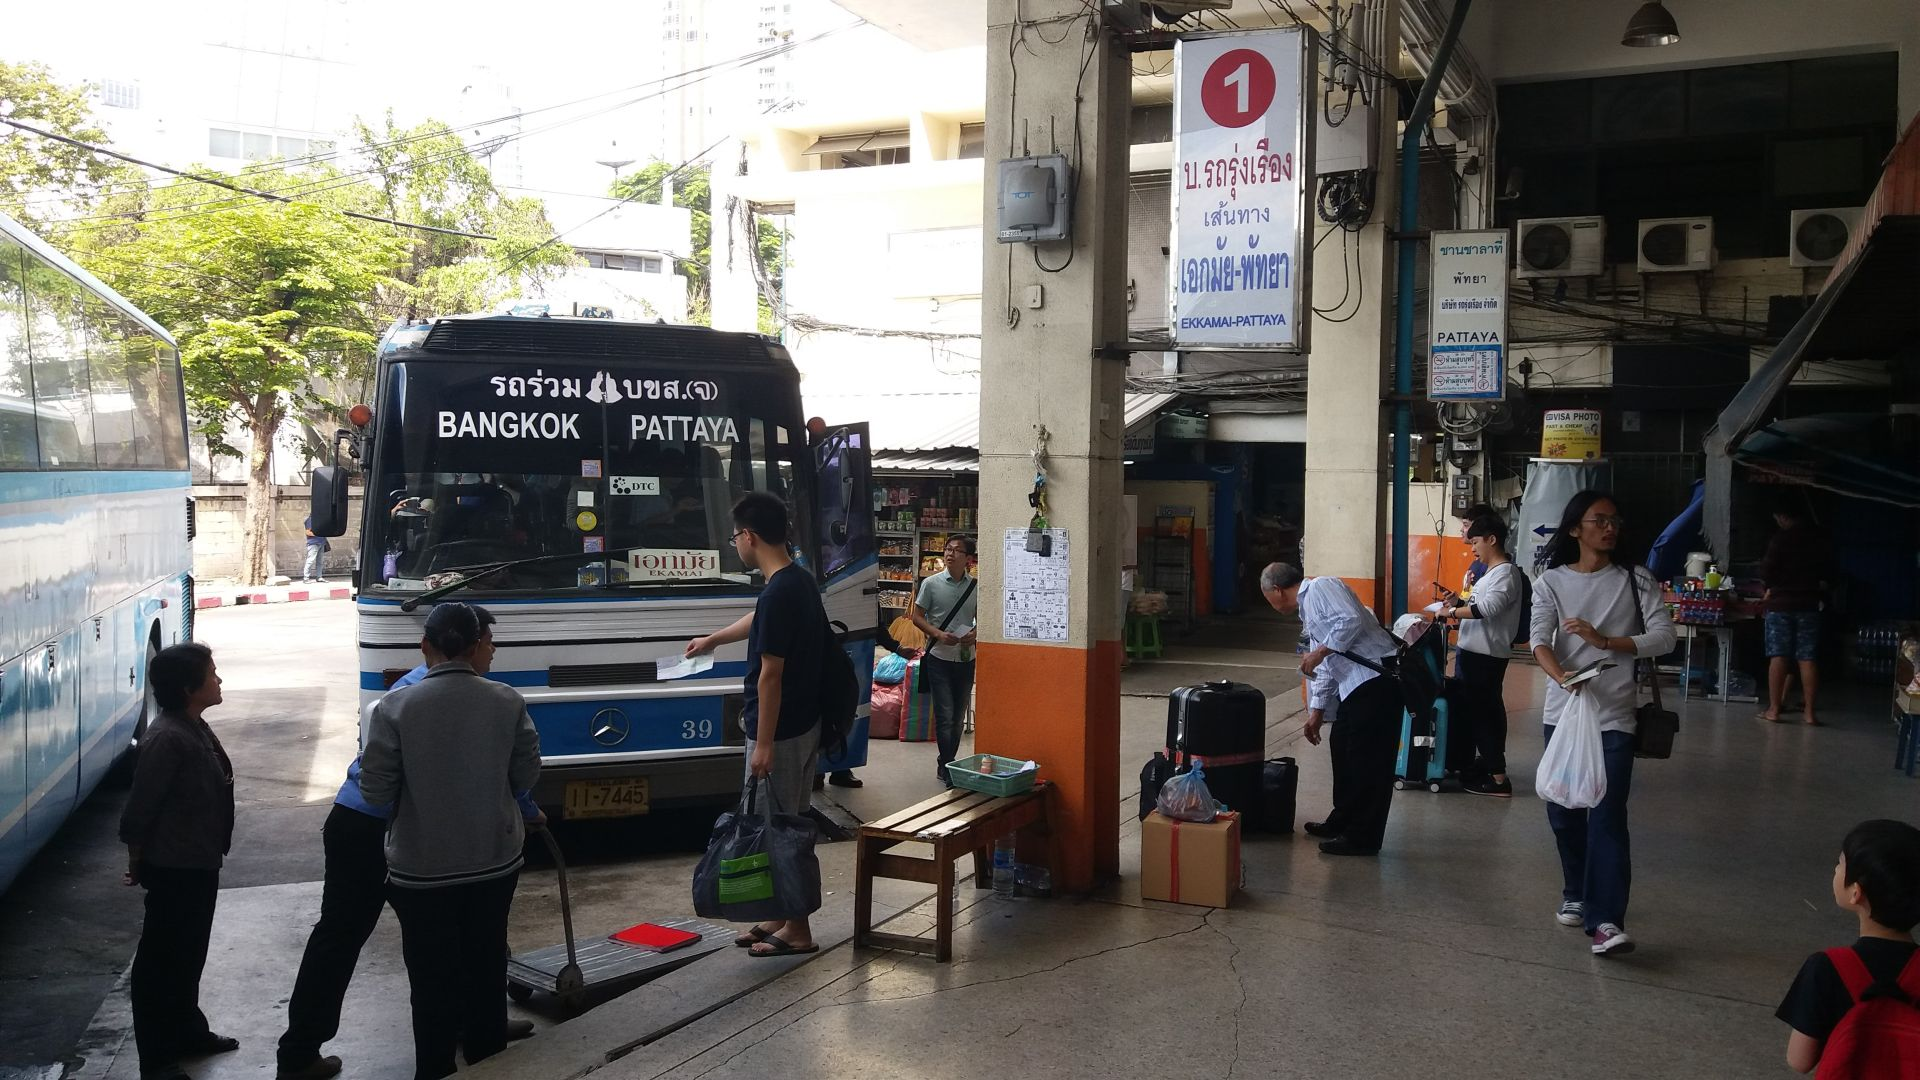 Autobus z Bangkoku do Pattaya.